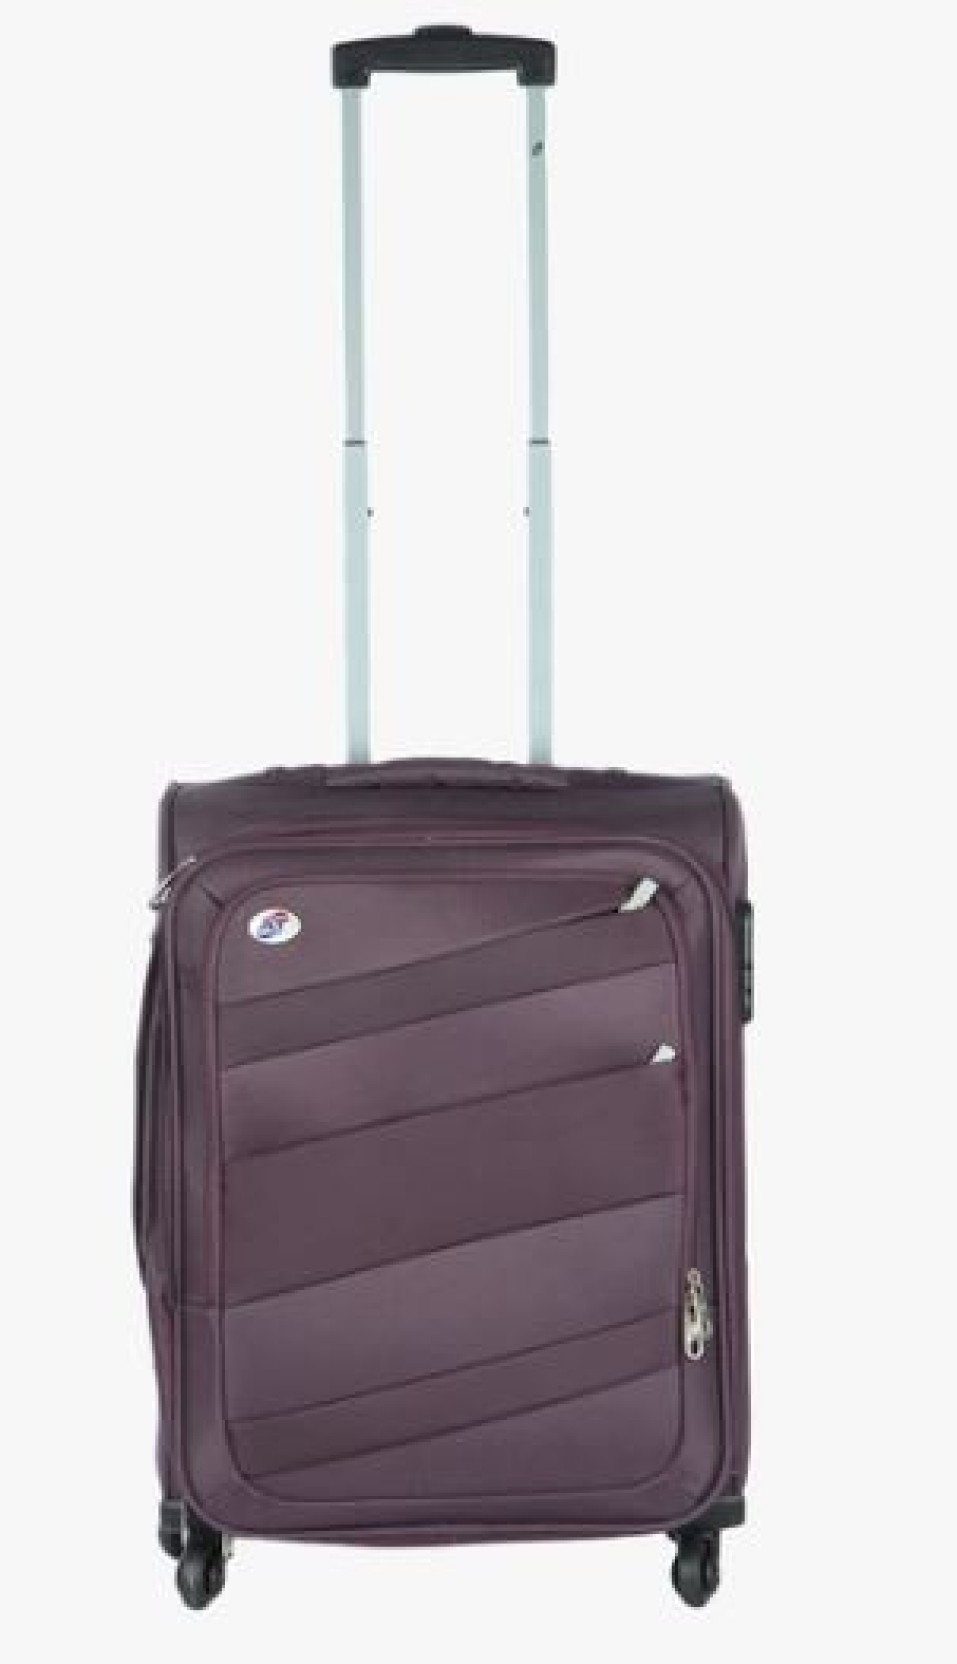 american tourister expandable cabin luggage 31 inches